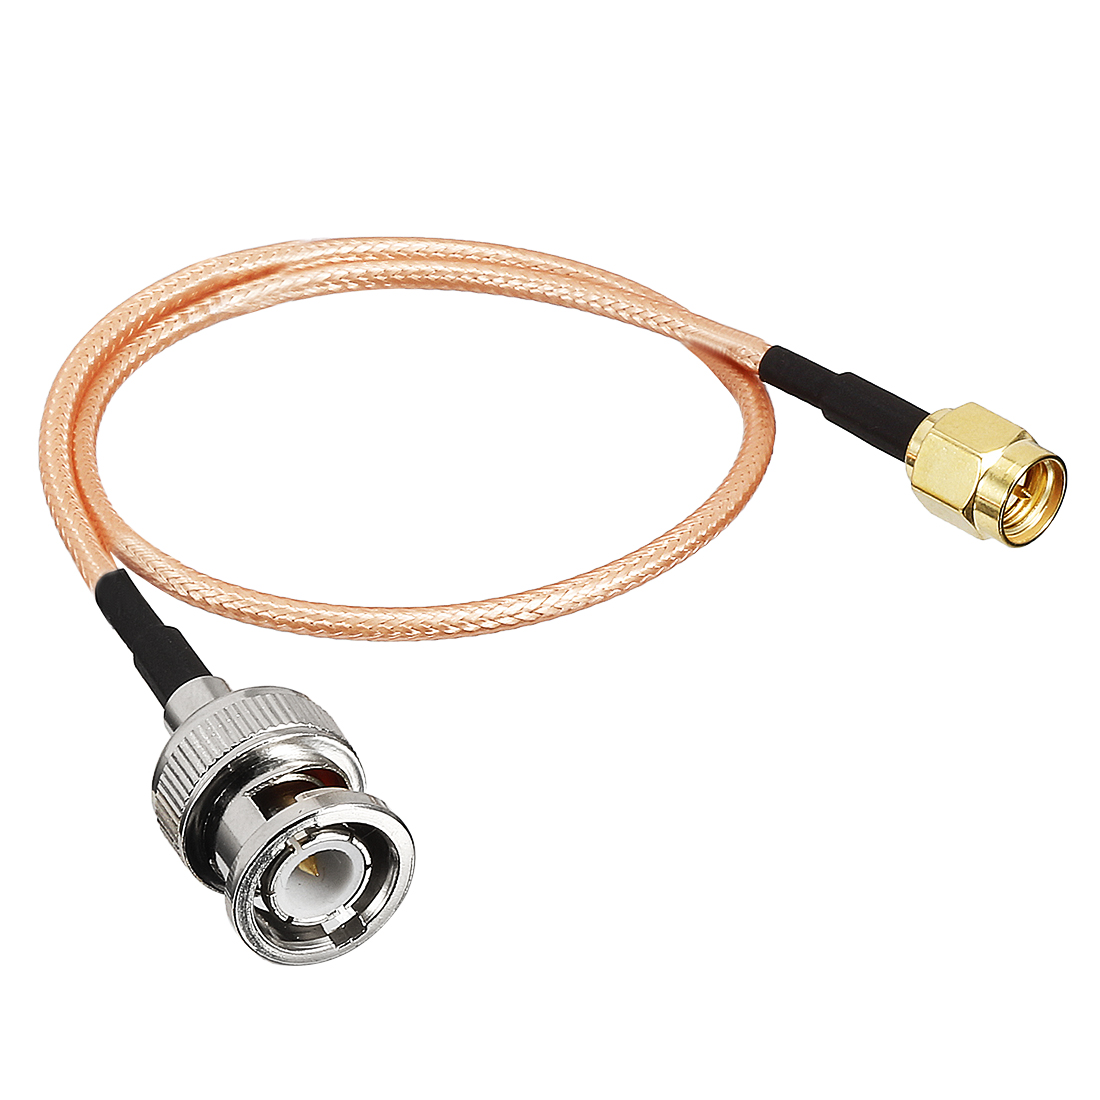 30cm Cable Length SMA Male to BNC Male Jack RF Coaxial Adapter Connector